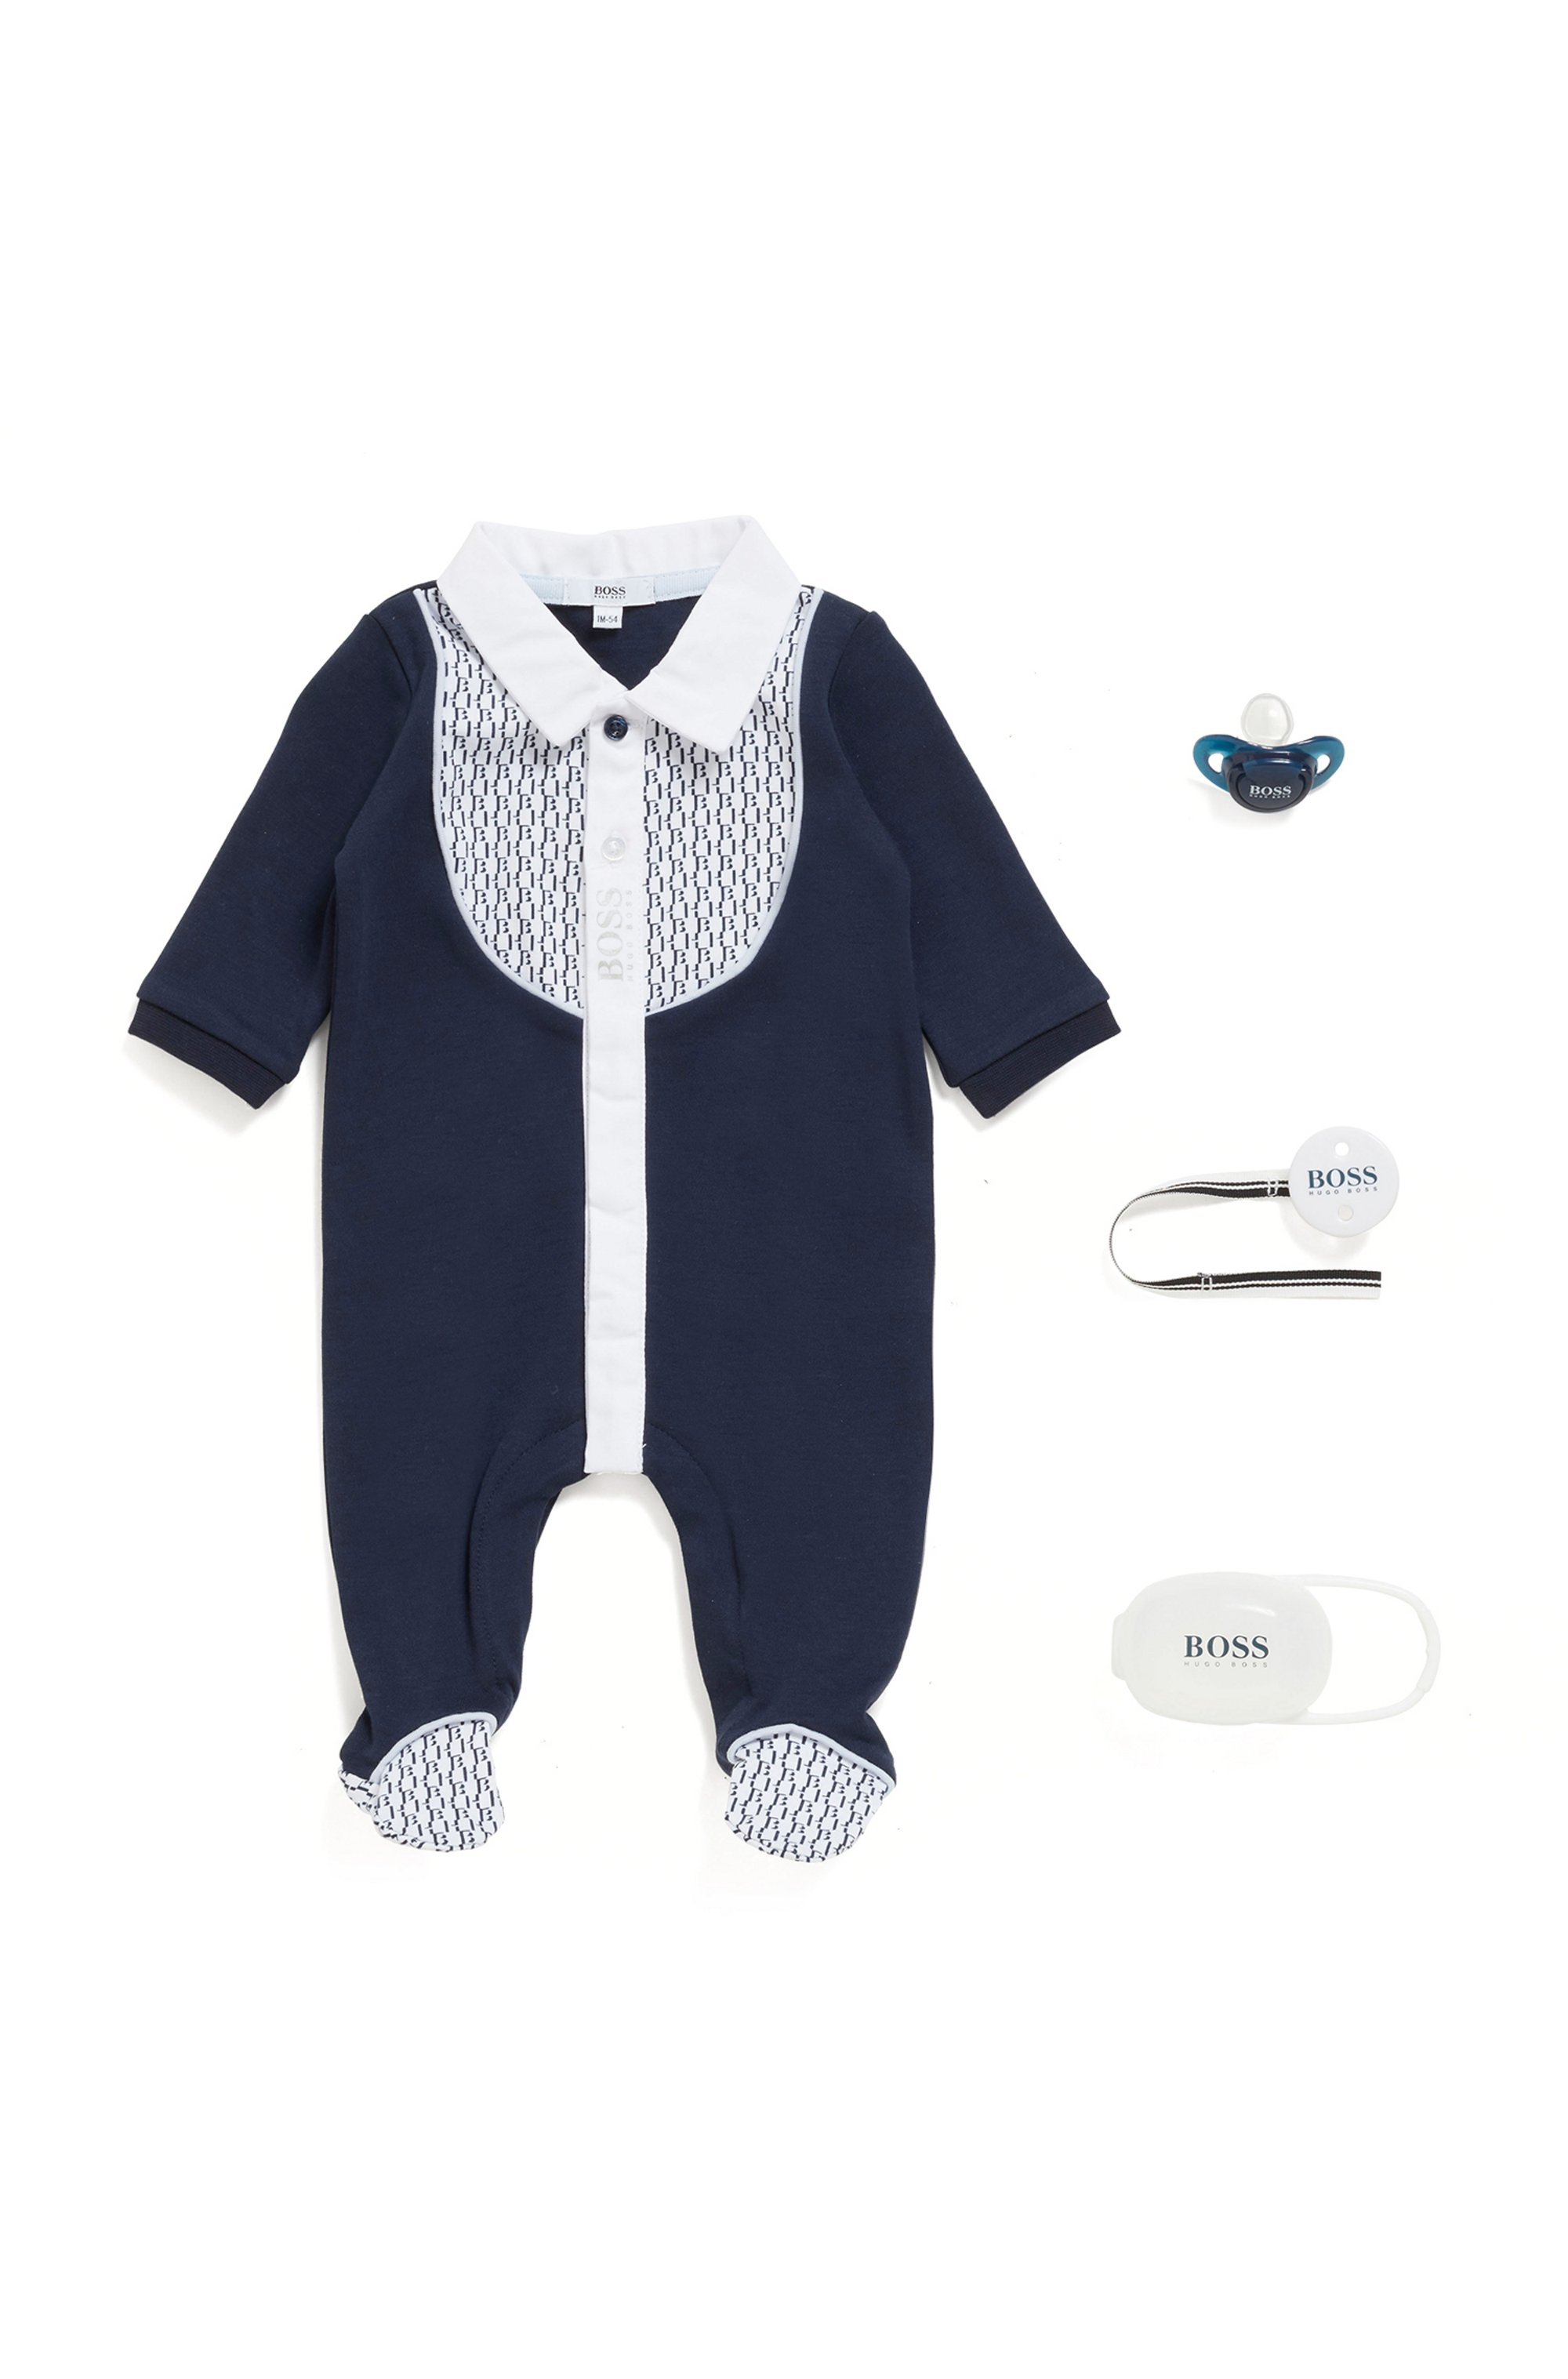 Gift-boxed baby dummy and accessory set